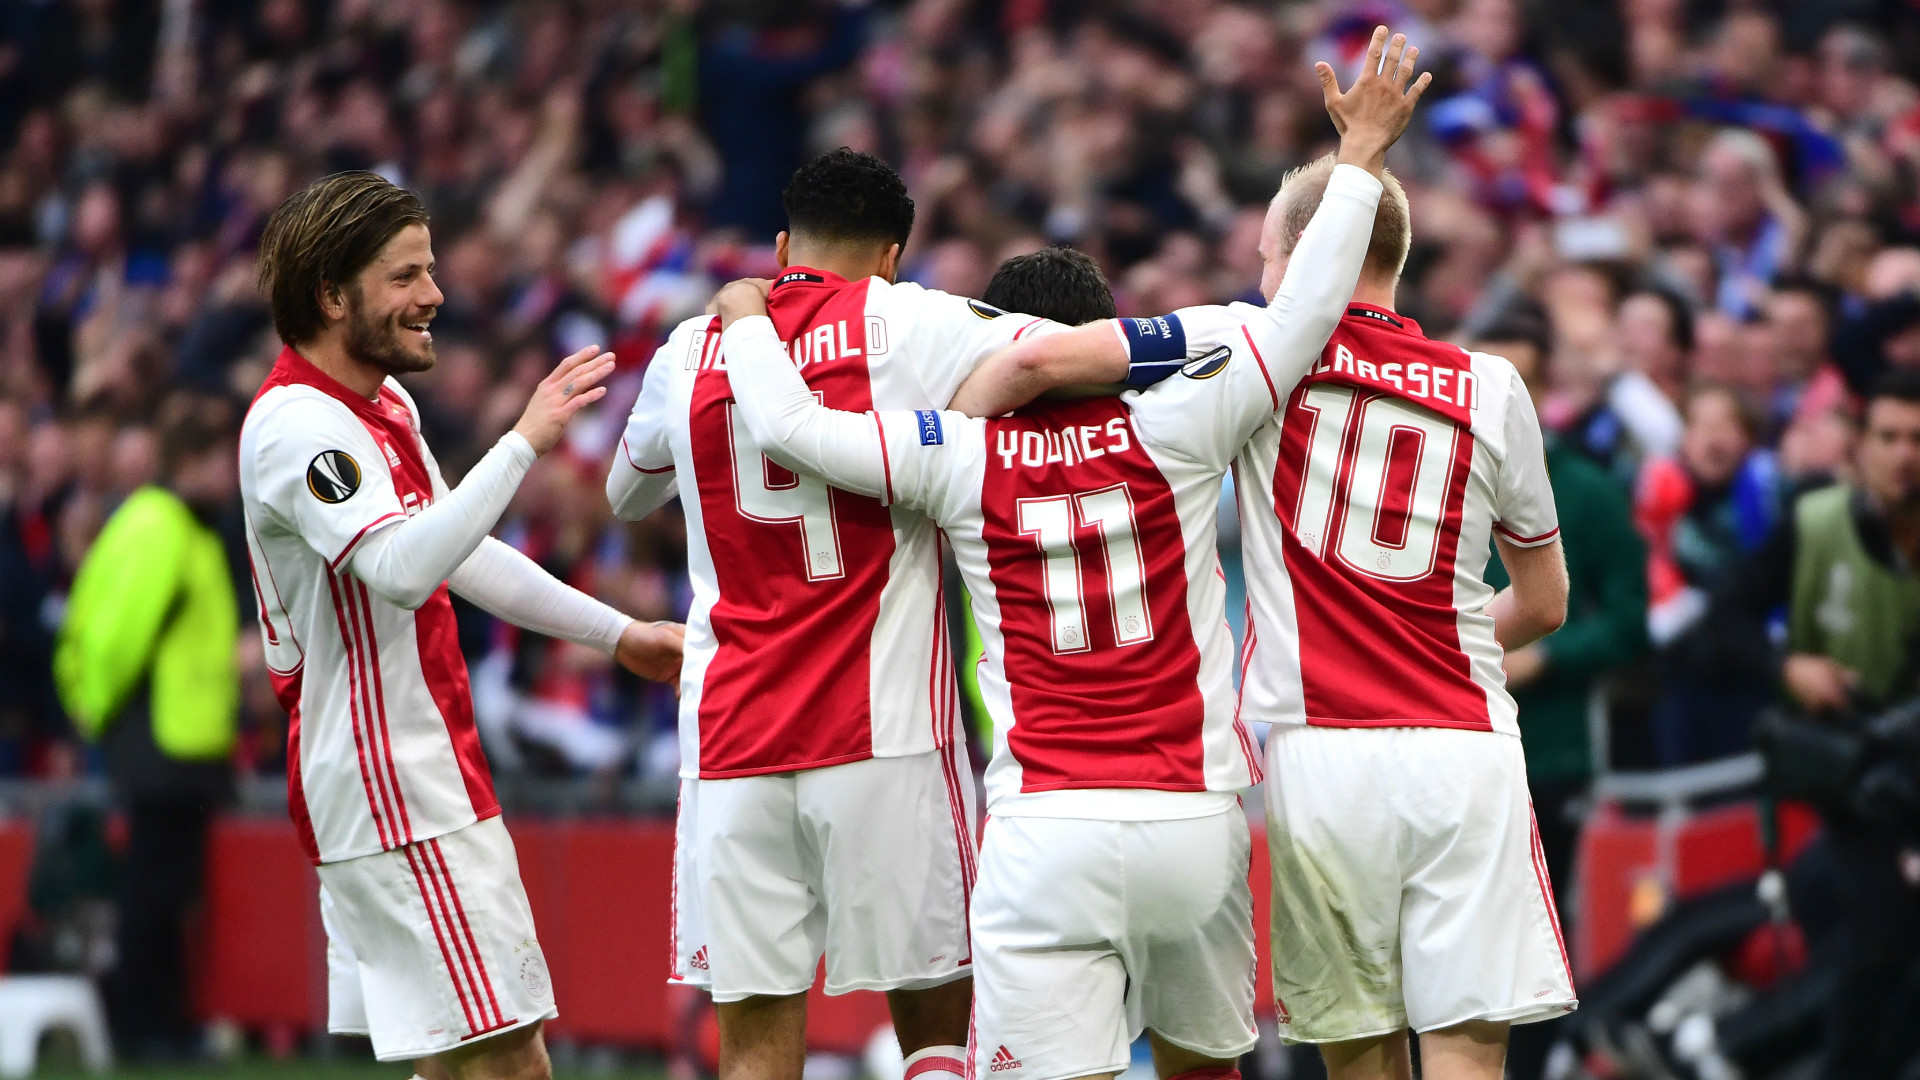 This Is Why Manchester United Will Feel More Pressure - Ajax Coach